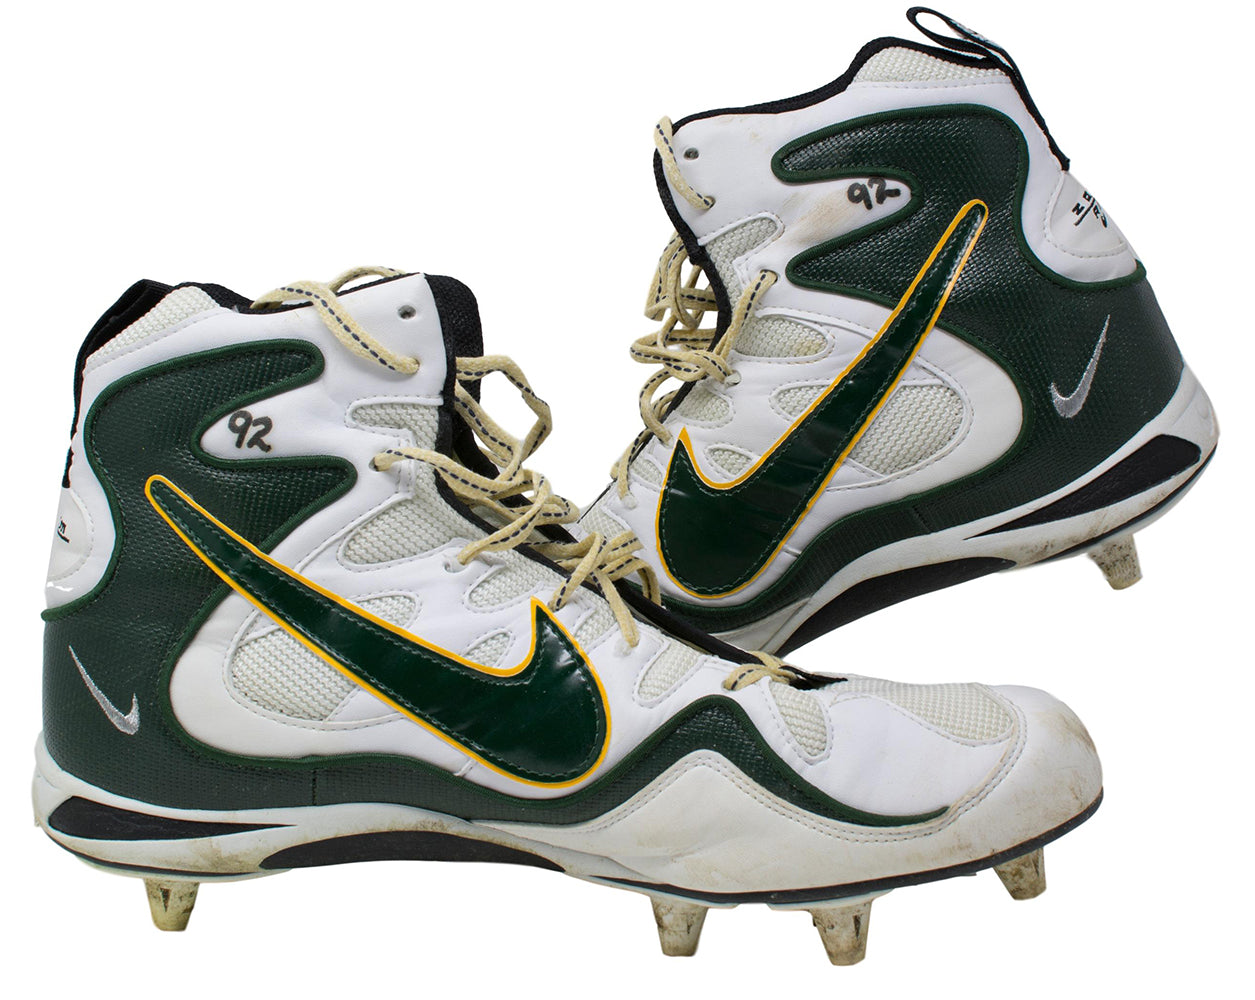 Reggie White Green Bay Packers Game Used Cleats Sept 14th 1997 Vs Miami Dolphins PSM